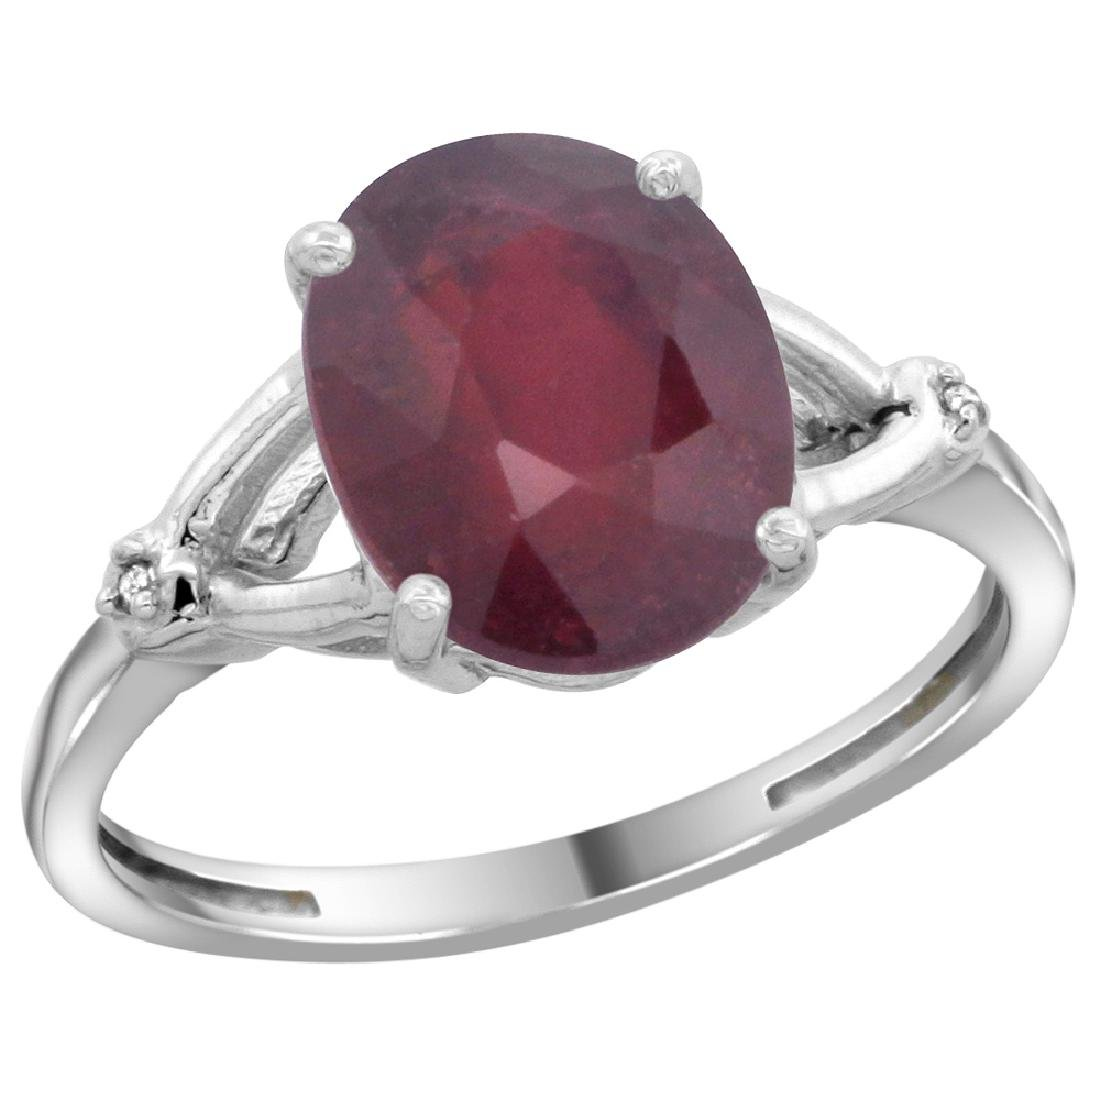 Natural 3.65 ctw Ruby & Diamond Engagement Ring 10K